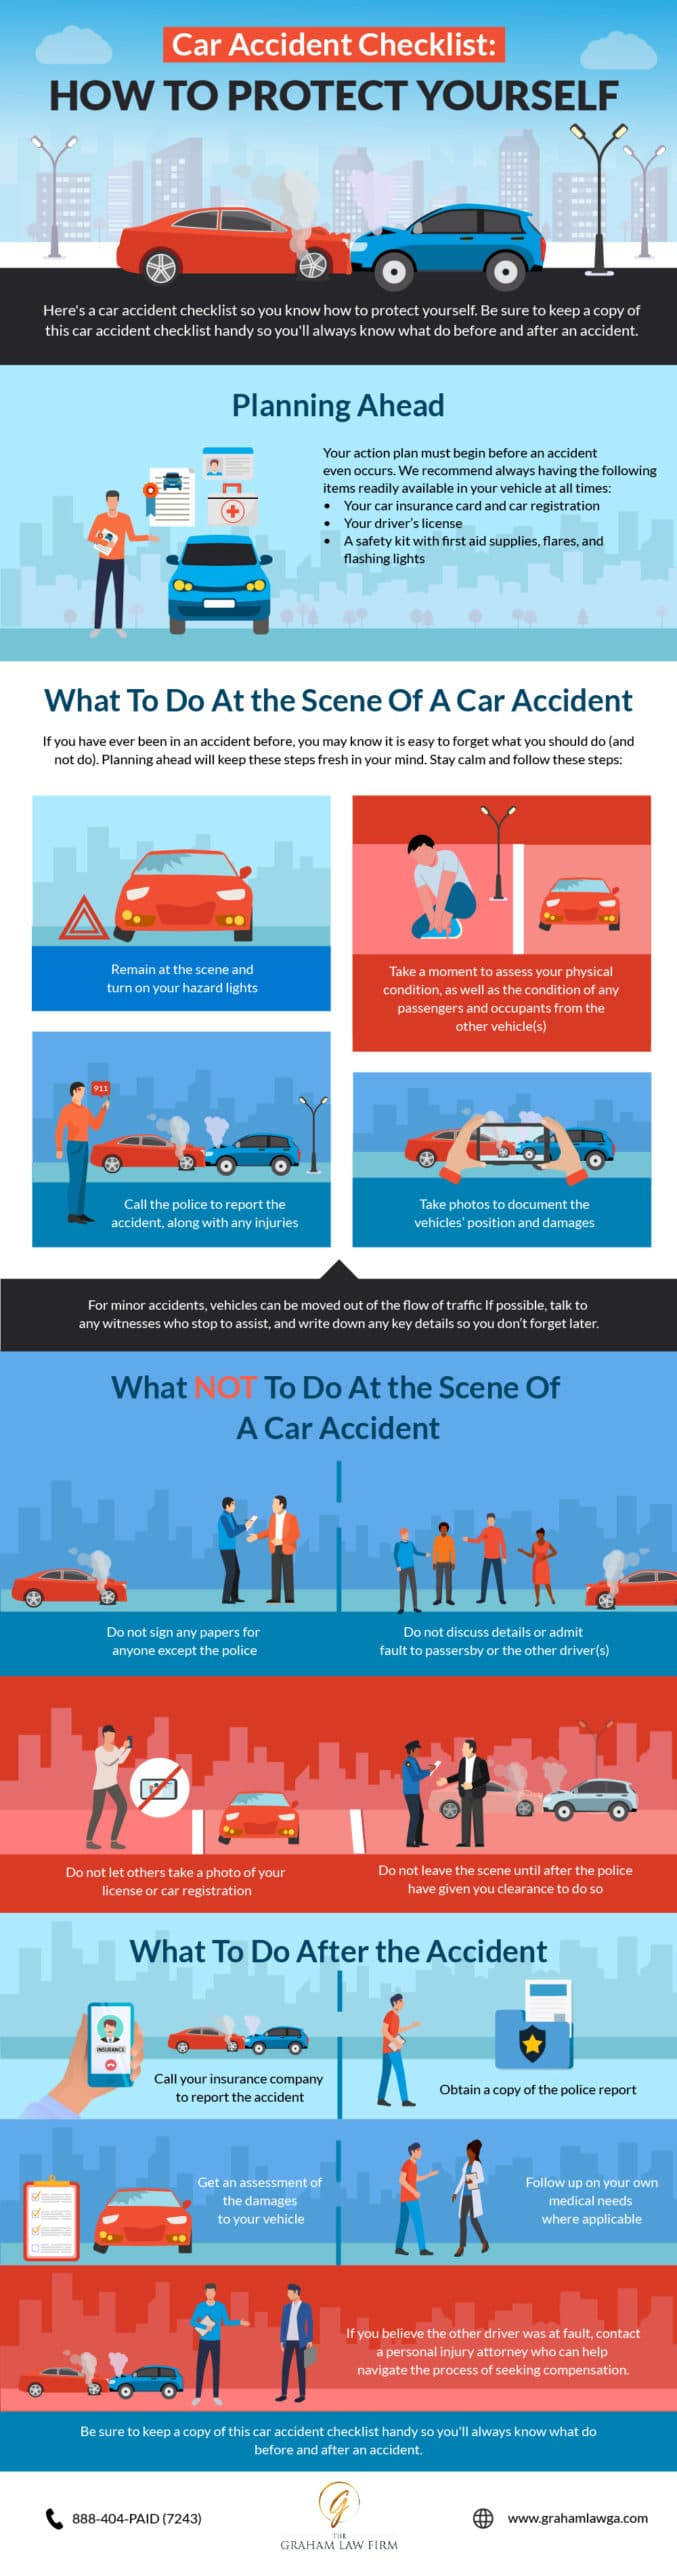 Car Accident Checklist Infographic 2020